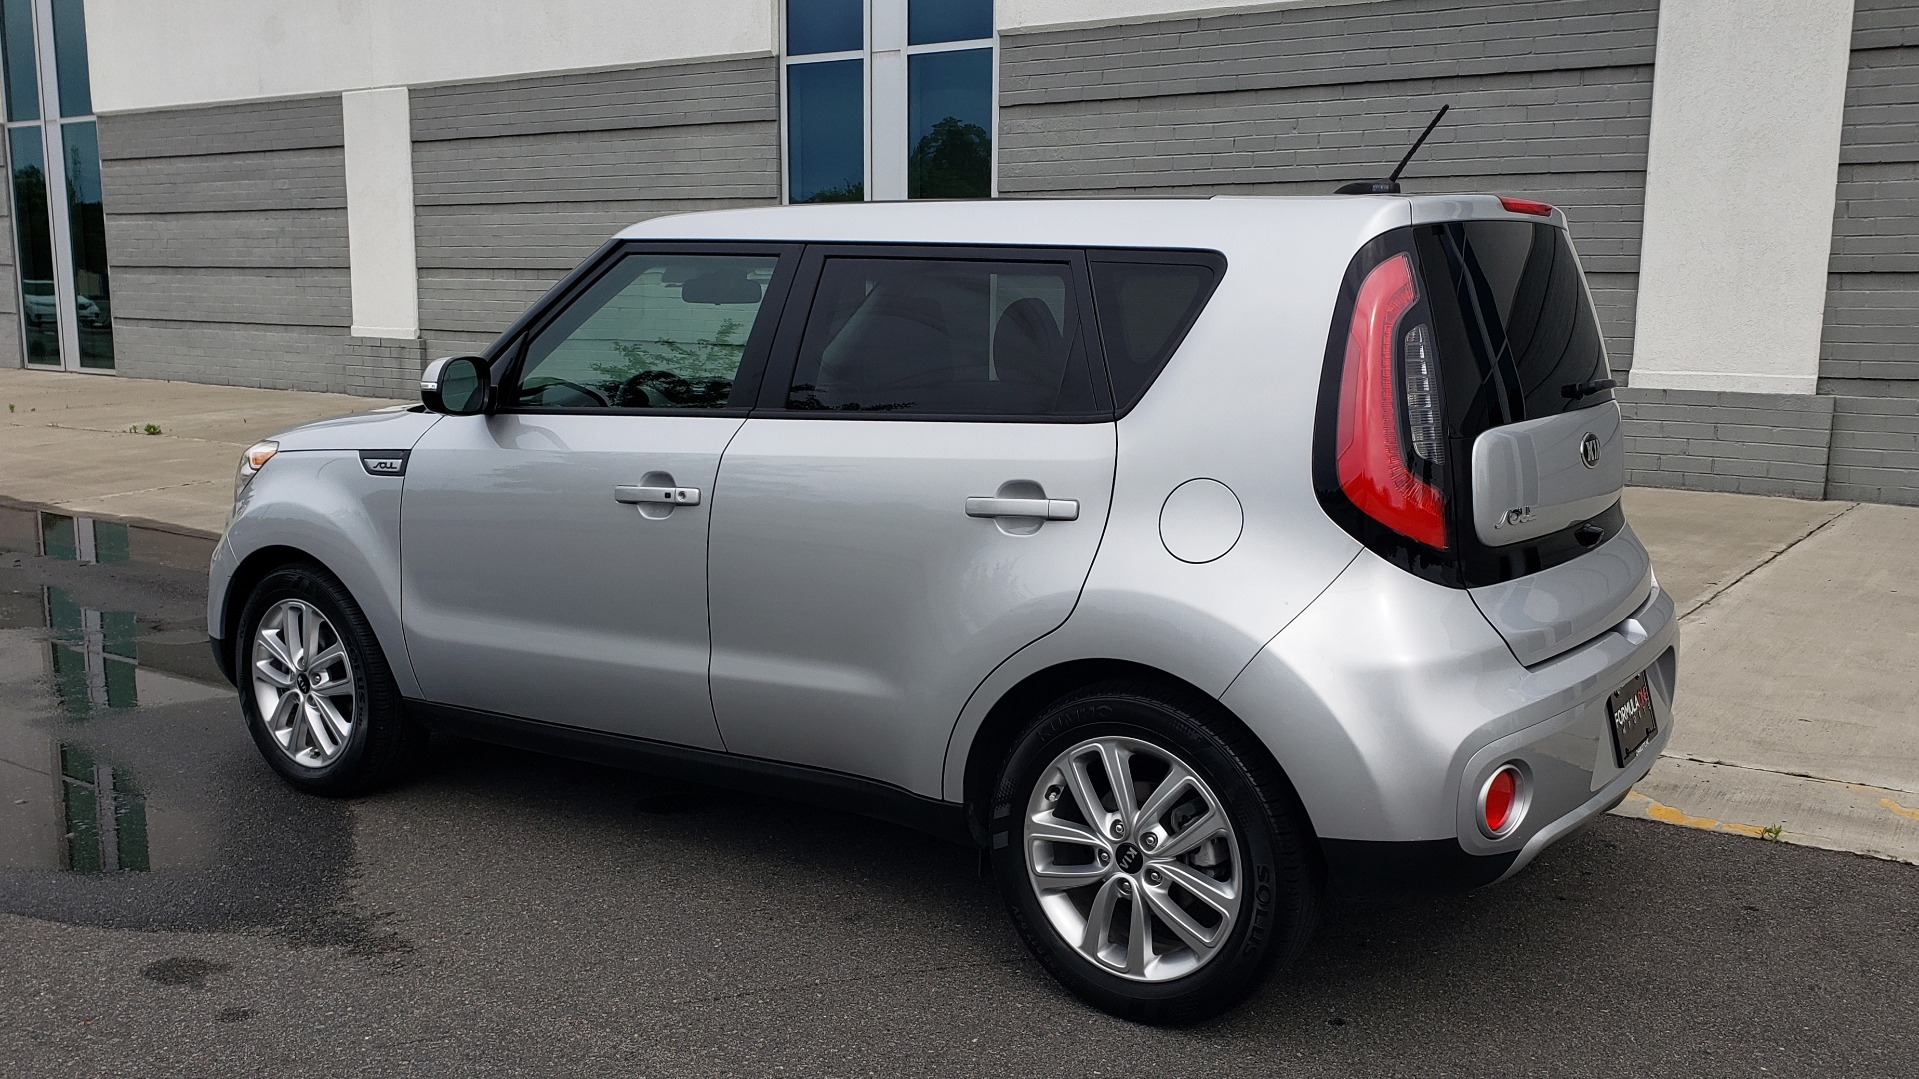 Used 2017 Kia SOUL PLUS / NAV / SUNROOF / LEATHER / HTD STS / REARVIEW for sale $16,995 at Formula Imports in Charlotte NC 28227 7